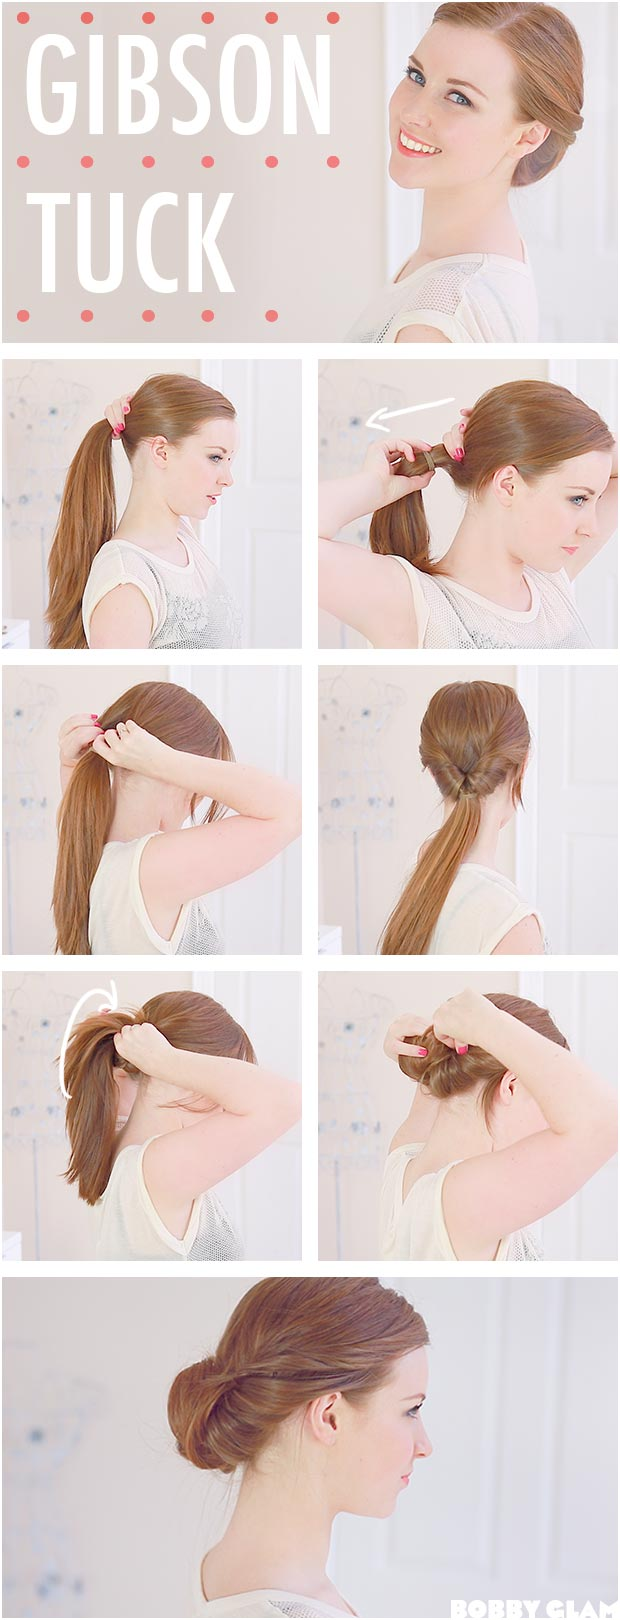 Hair Tutorials: 20 Ways to Style Your Hair in Summer - Hairstyles